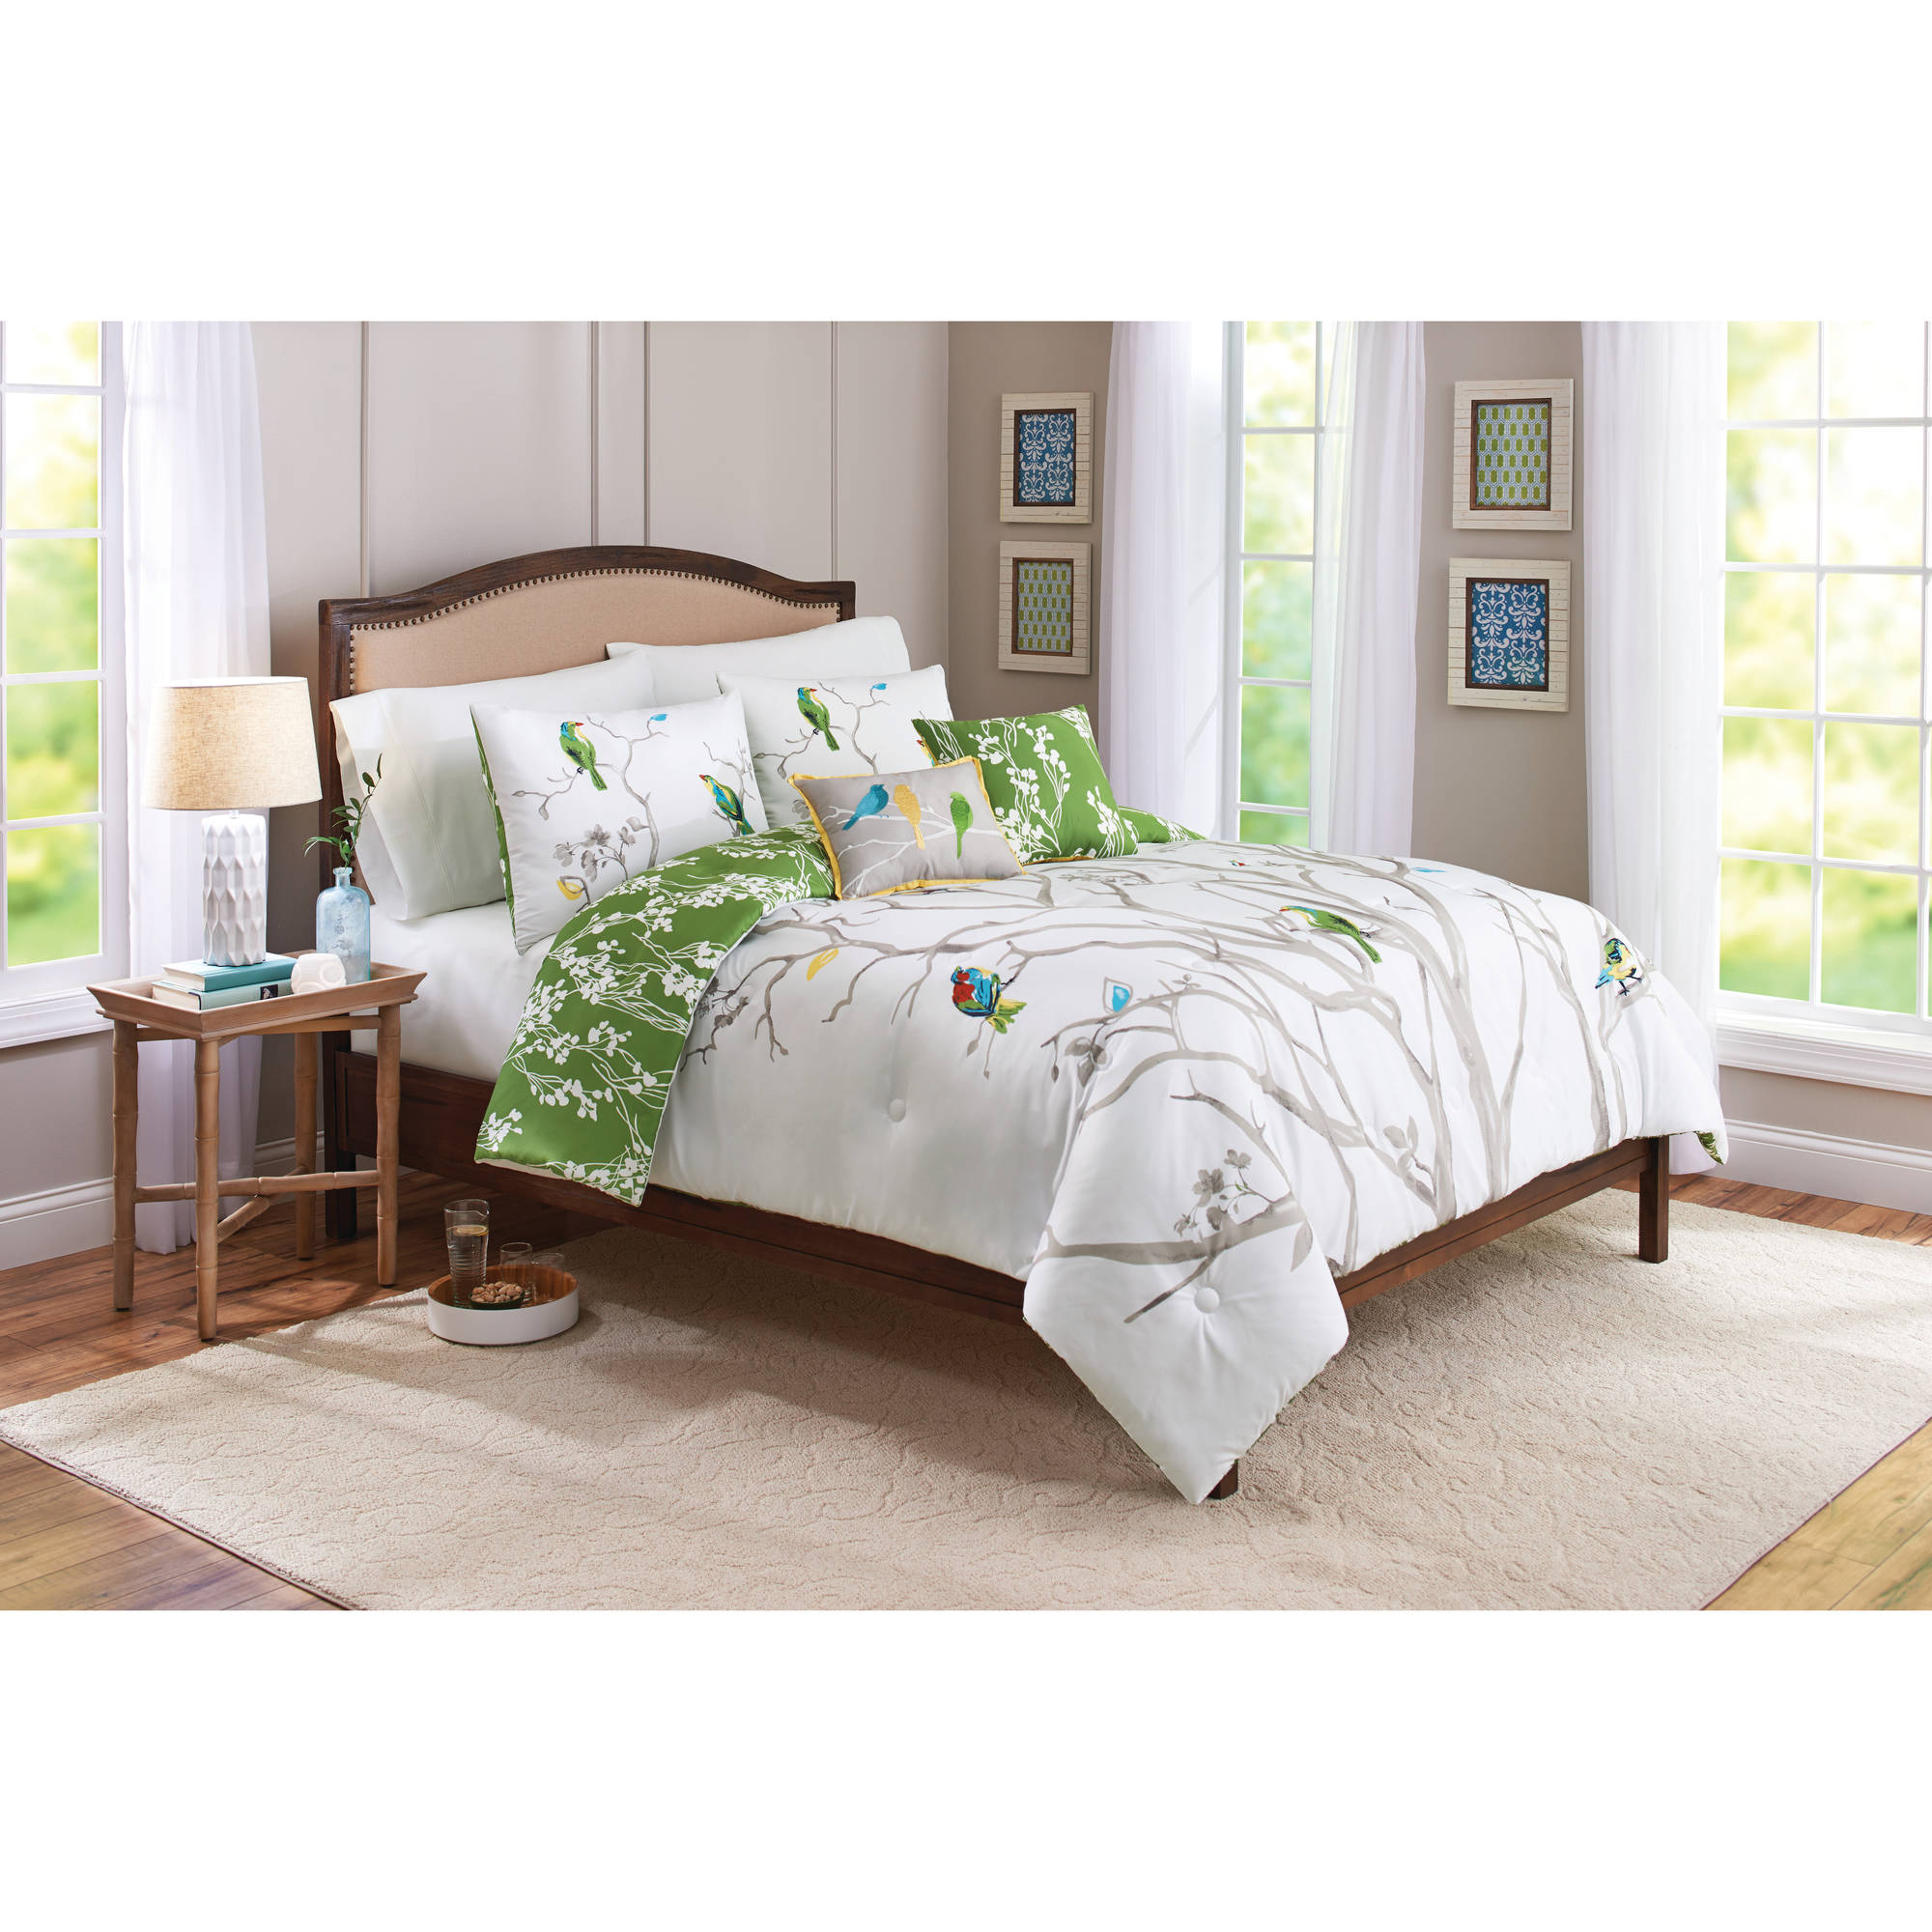 Better Homes Gardens Full Tree Top Comforter Set 5 Piece